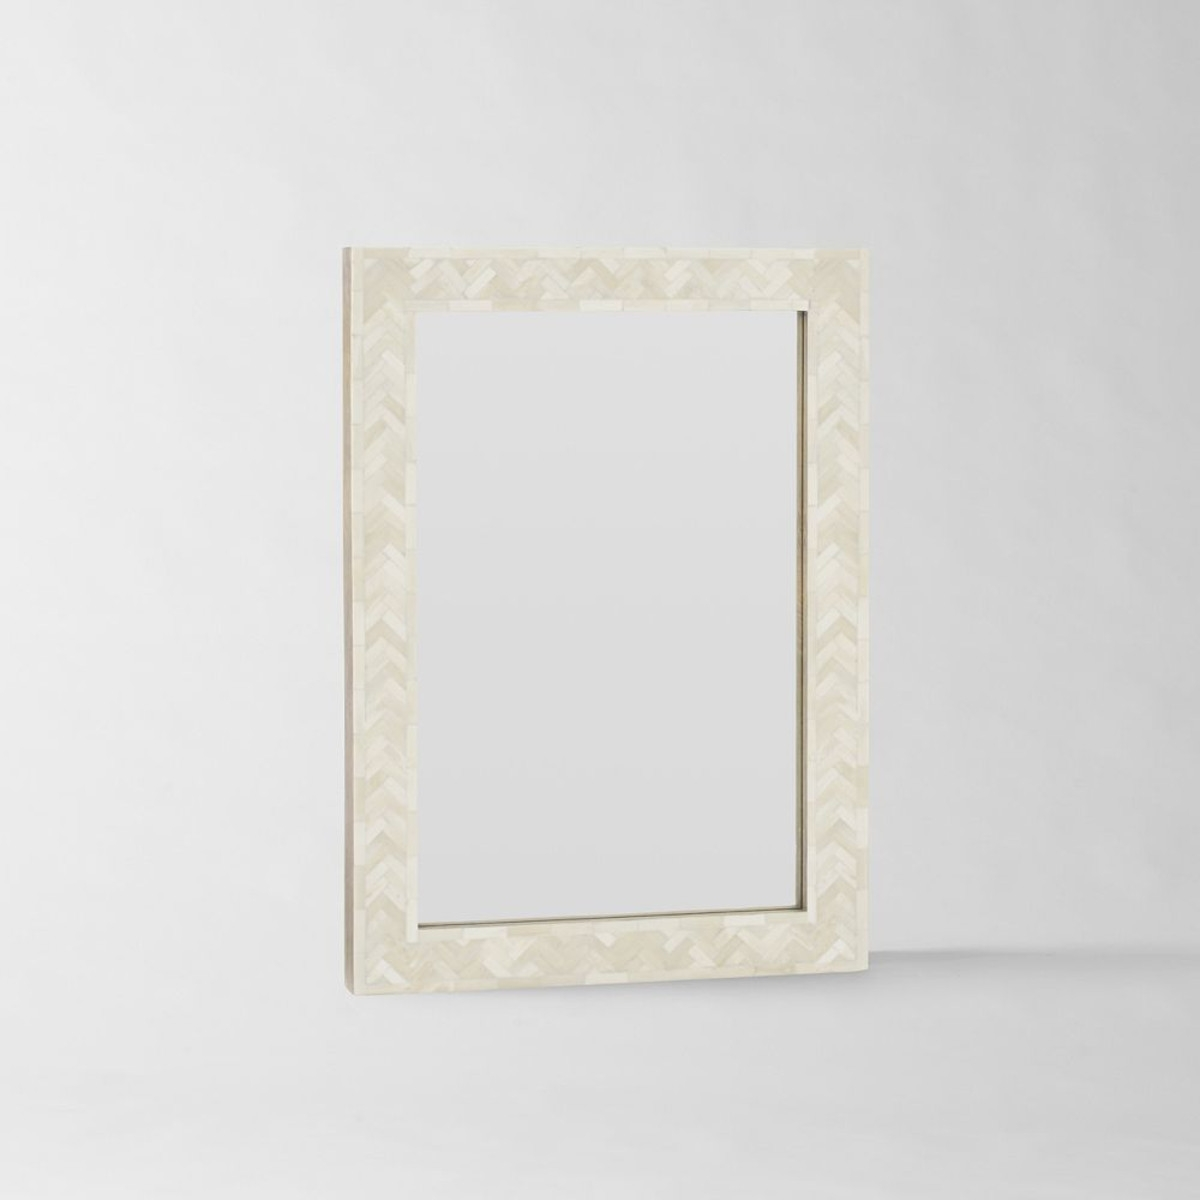 Brilliant Ideas Small Wall Mirror Winsome Design Clarendon Small With Clarendon Mirror (Image 2 of 15)